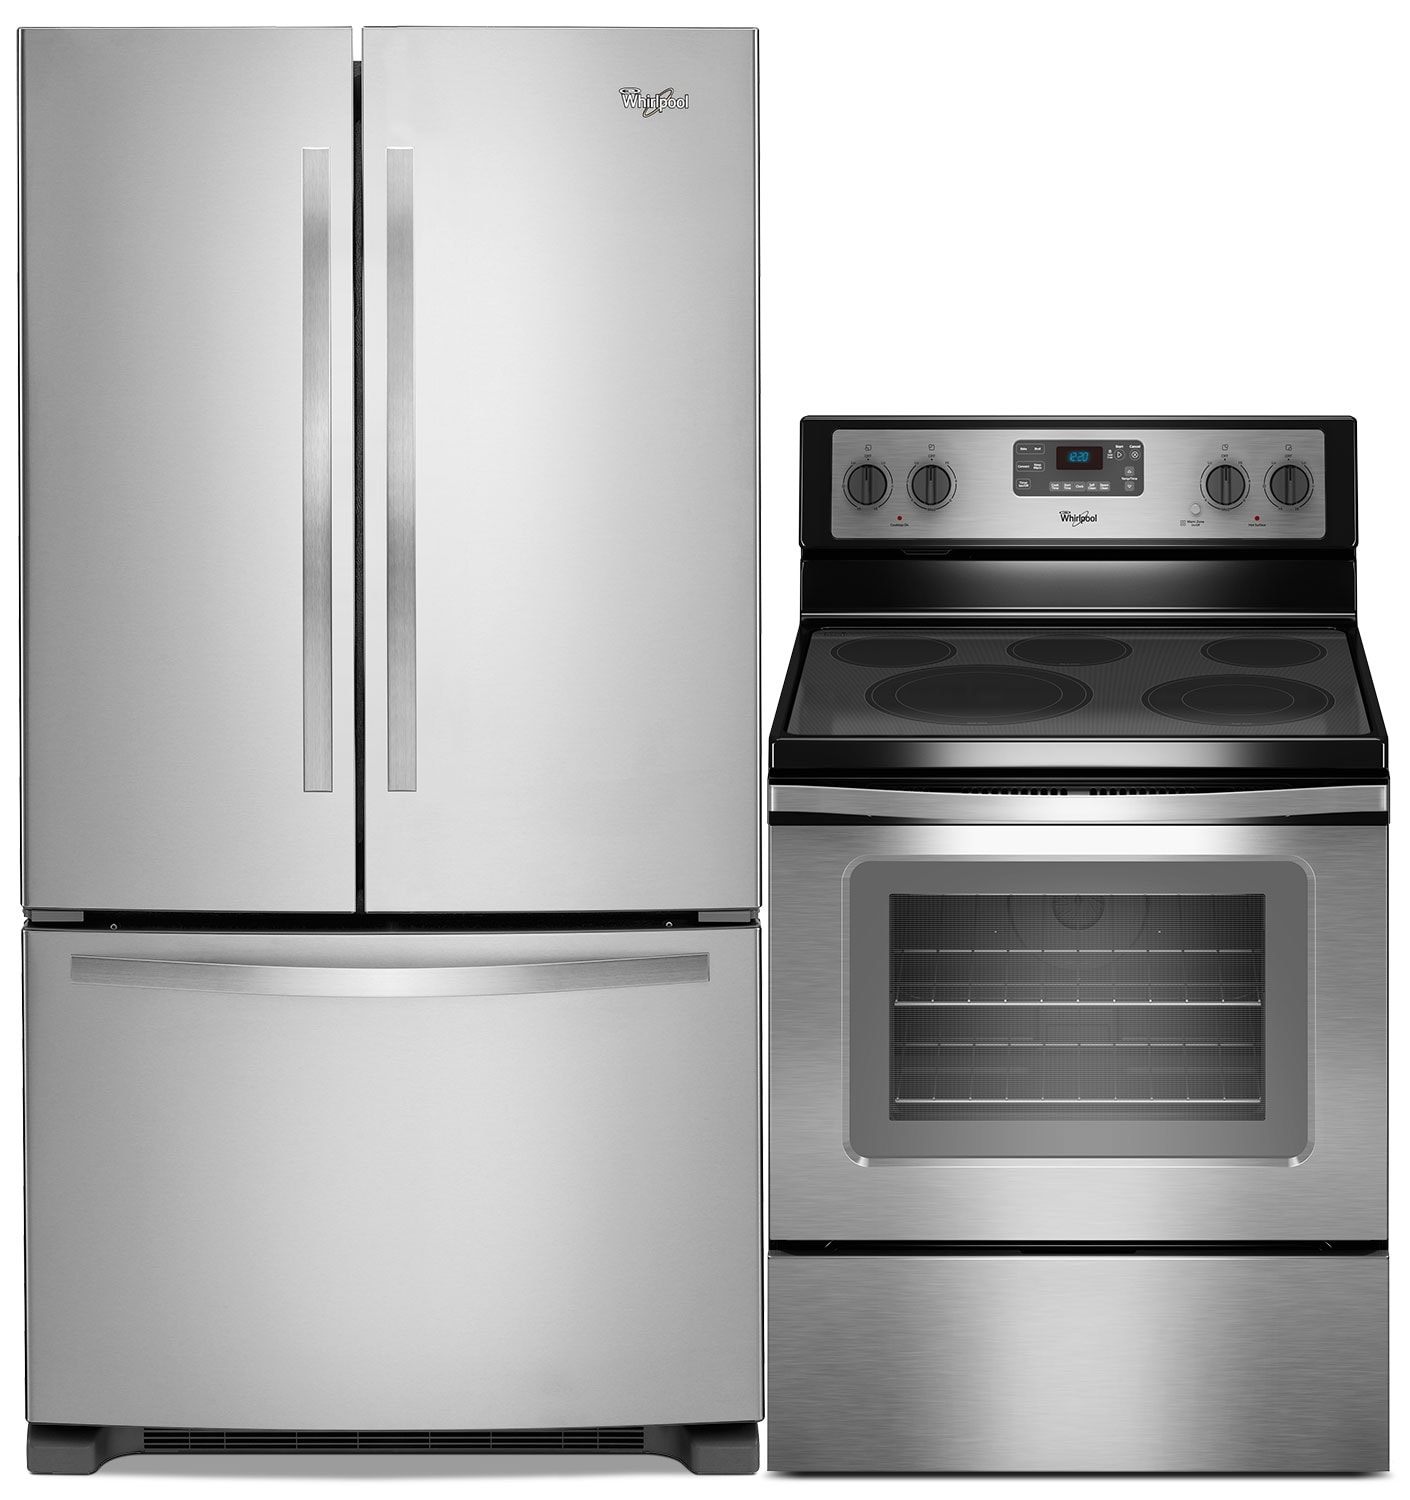 Cooking Products - Whirlpool 22 Cu. Ft. French-Door Refrigerator and Free-Standing Convection Range - Stainless Steel